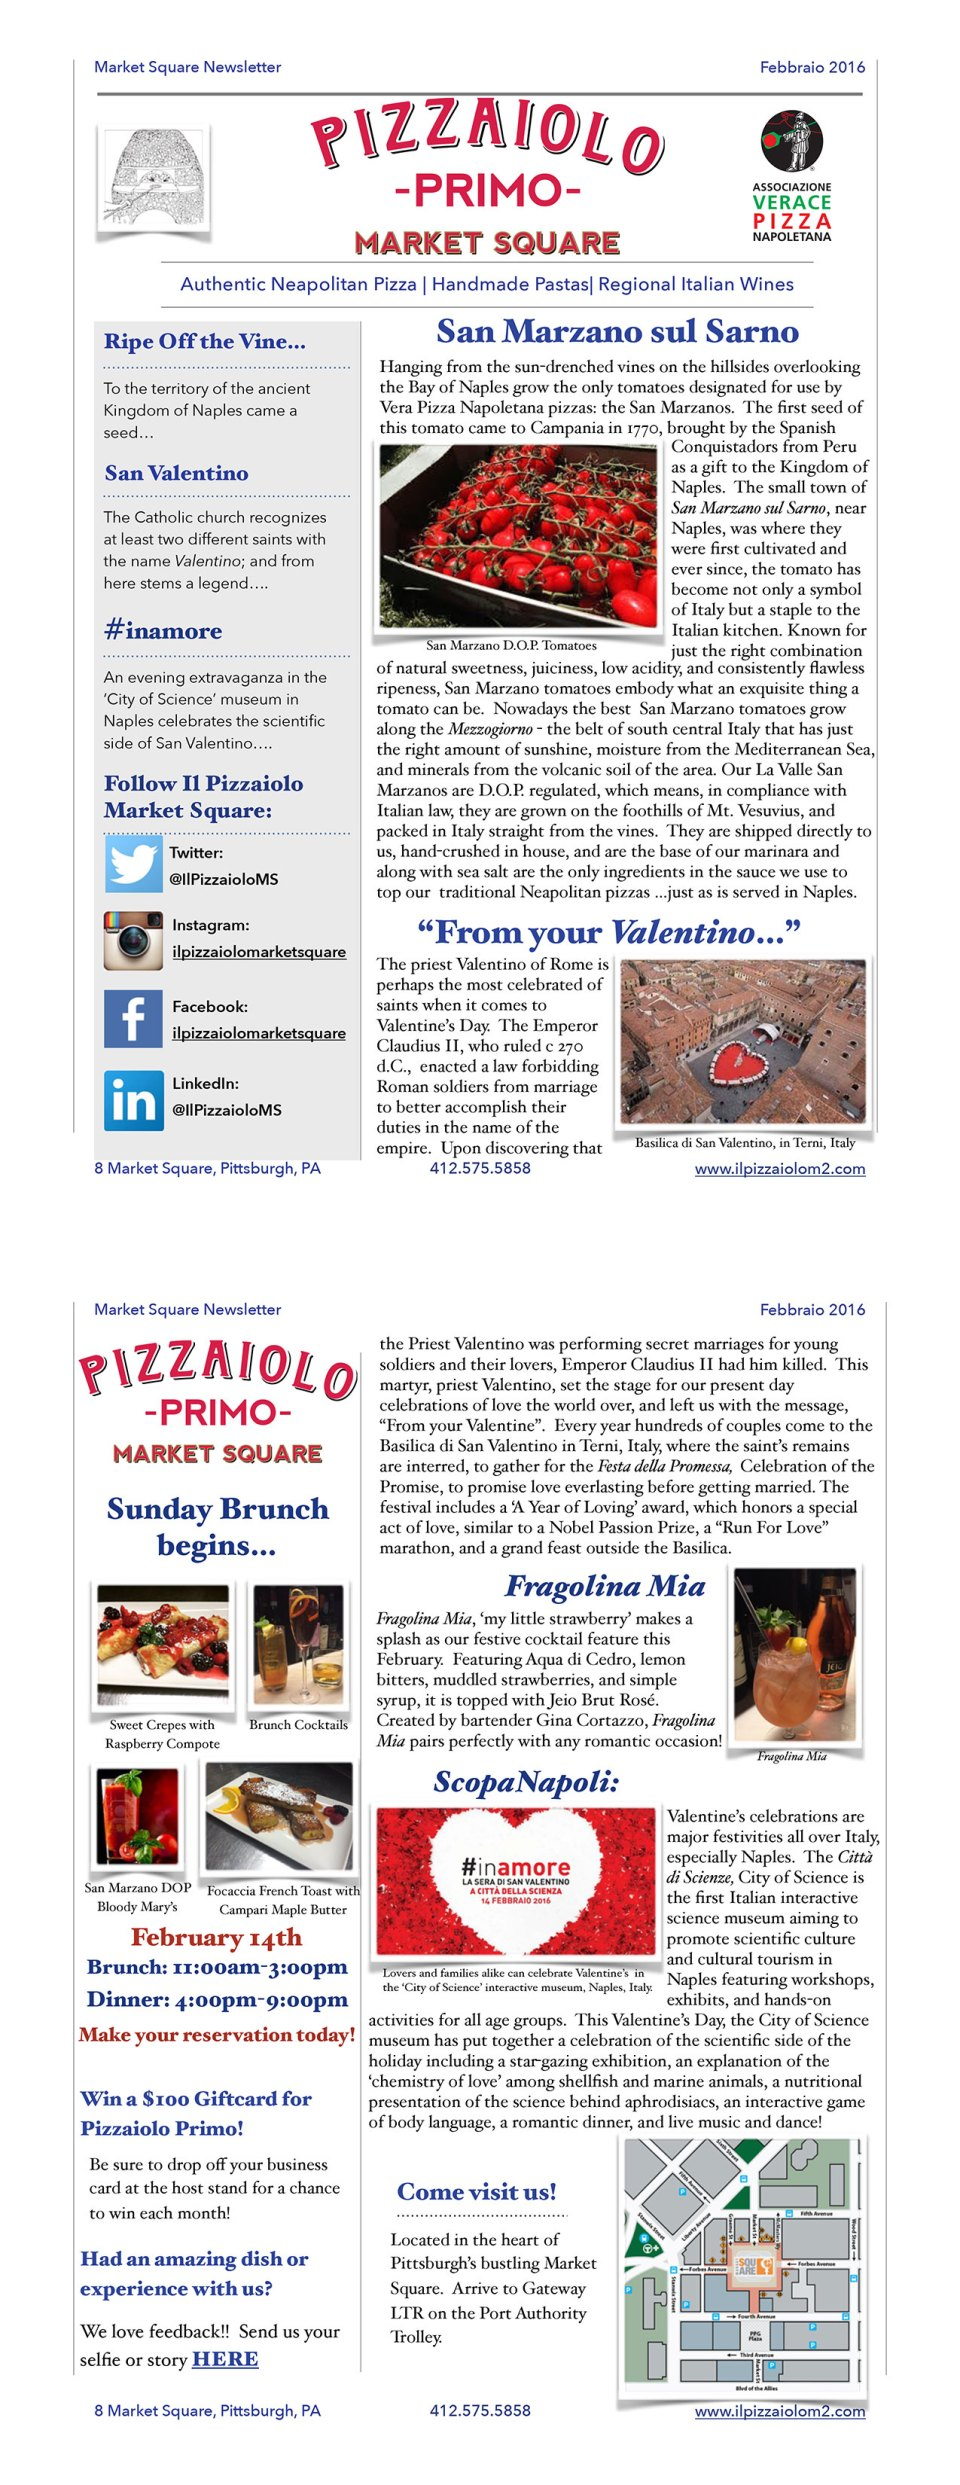 ilpizzaiolo-newsletter-feb2016